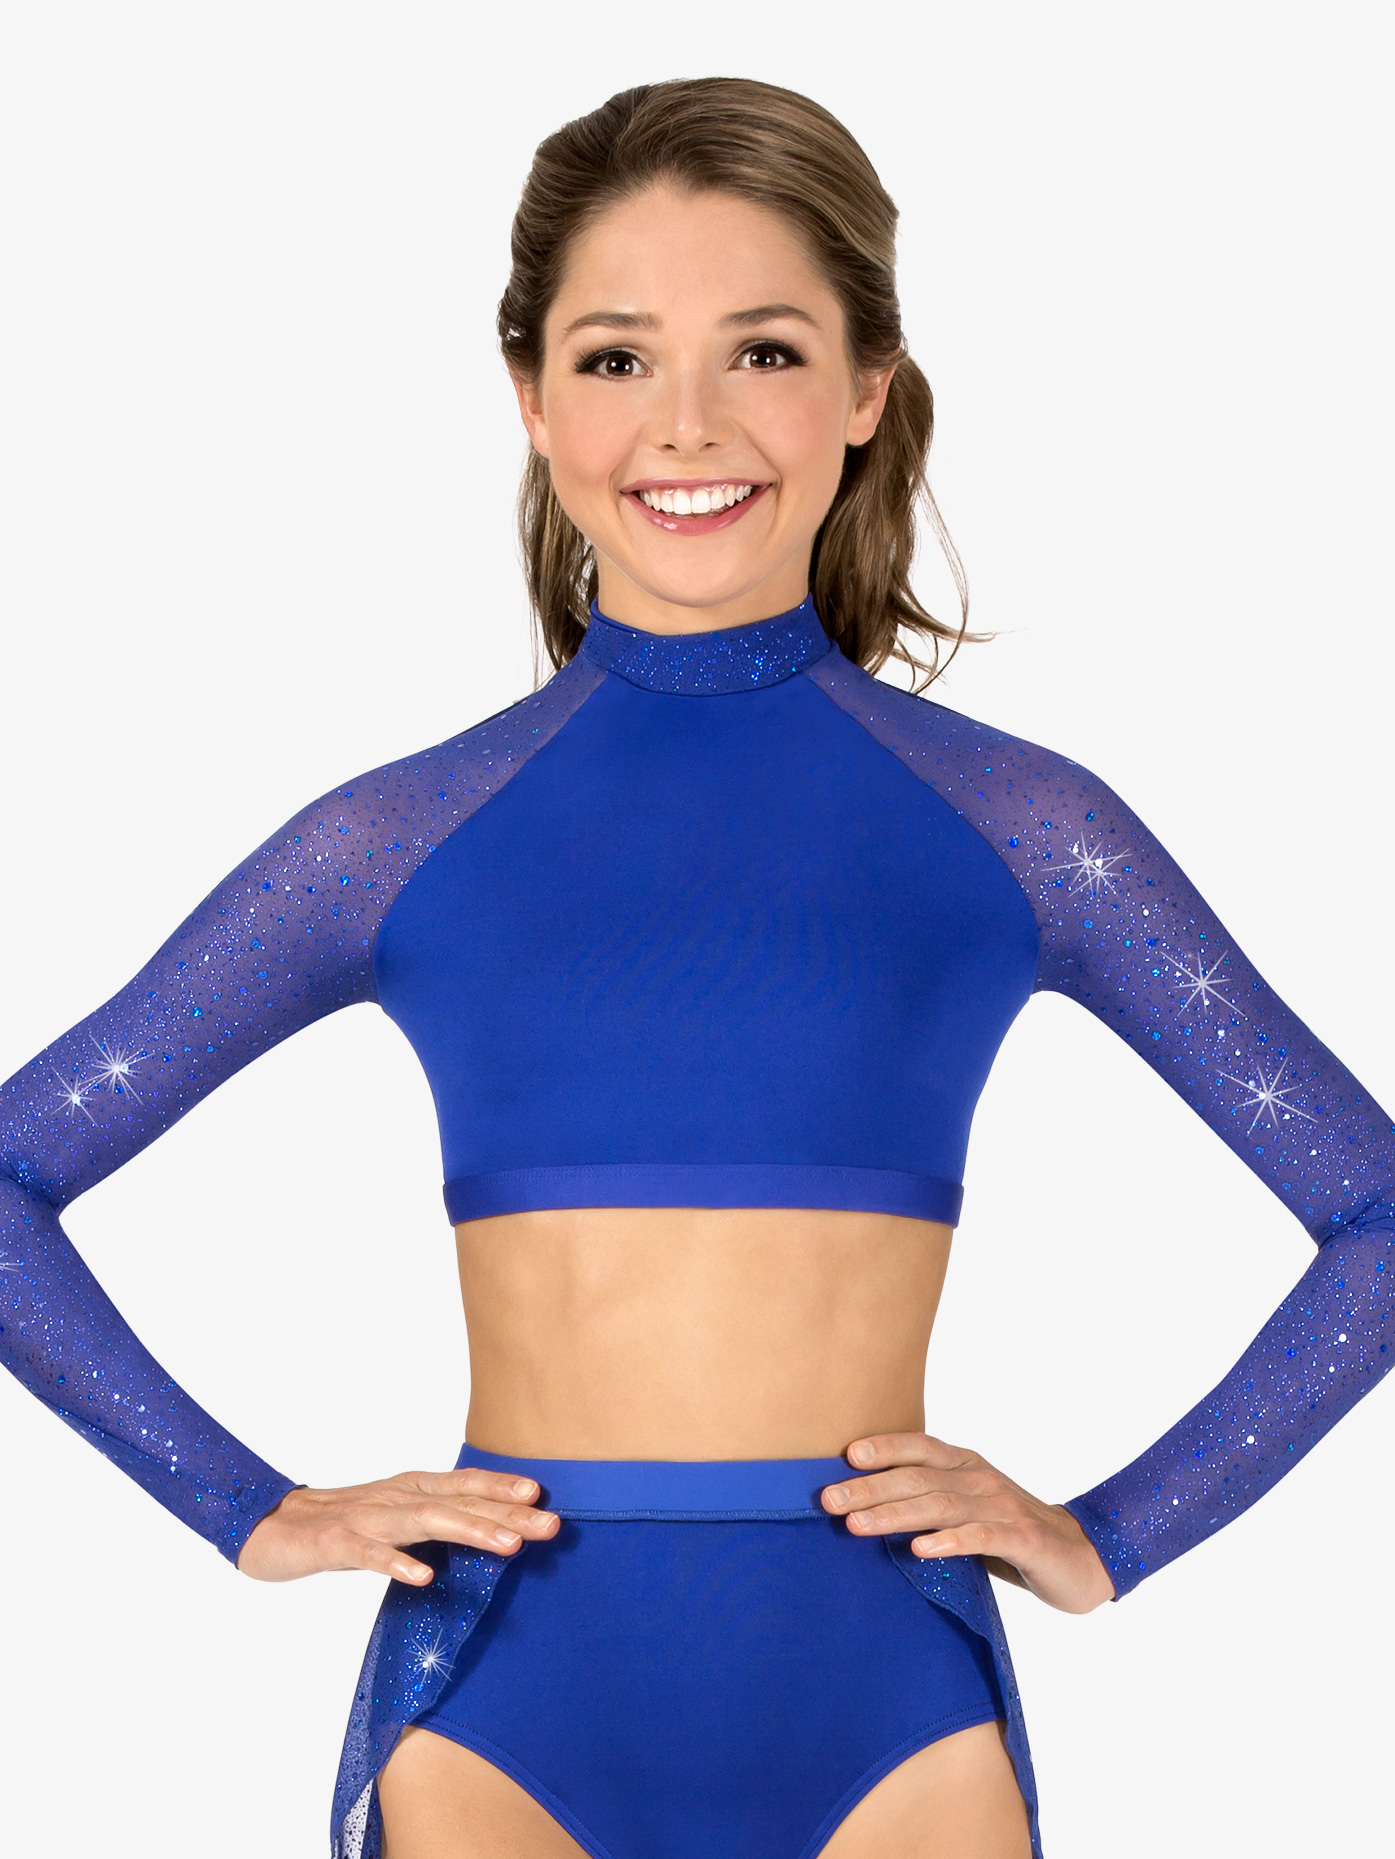 Body Wrappers Womens Performance Twinkle Mesh Long Sleeve Crop Top TW602